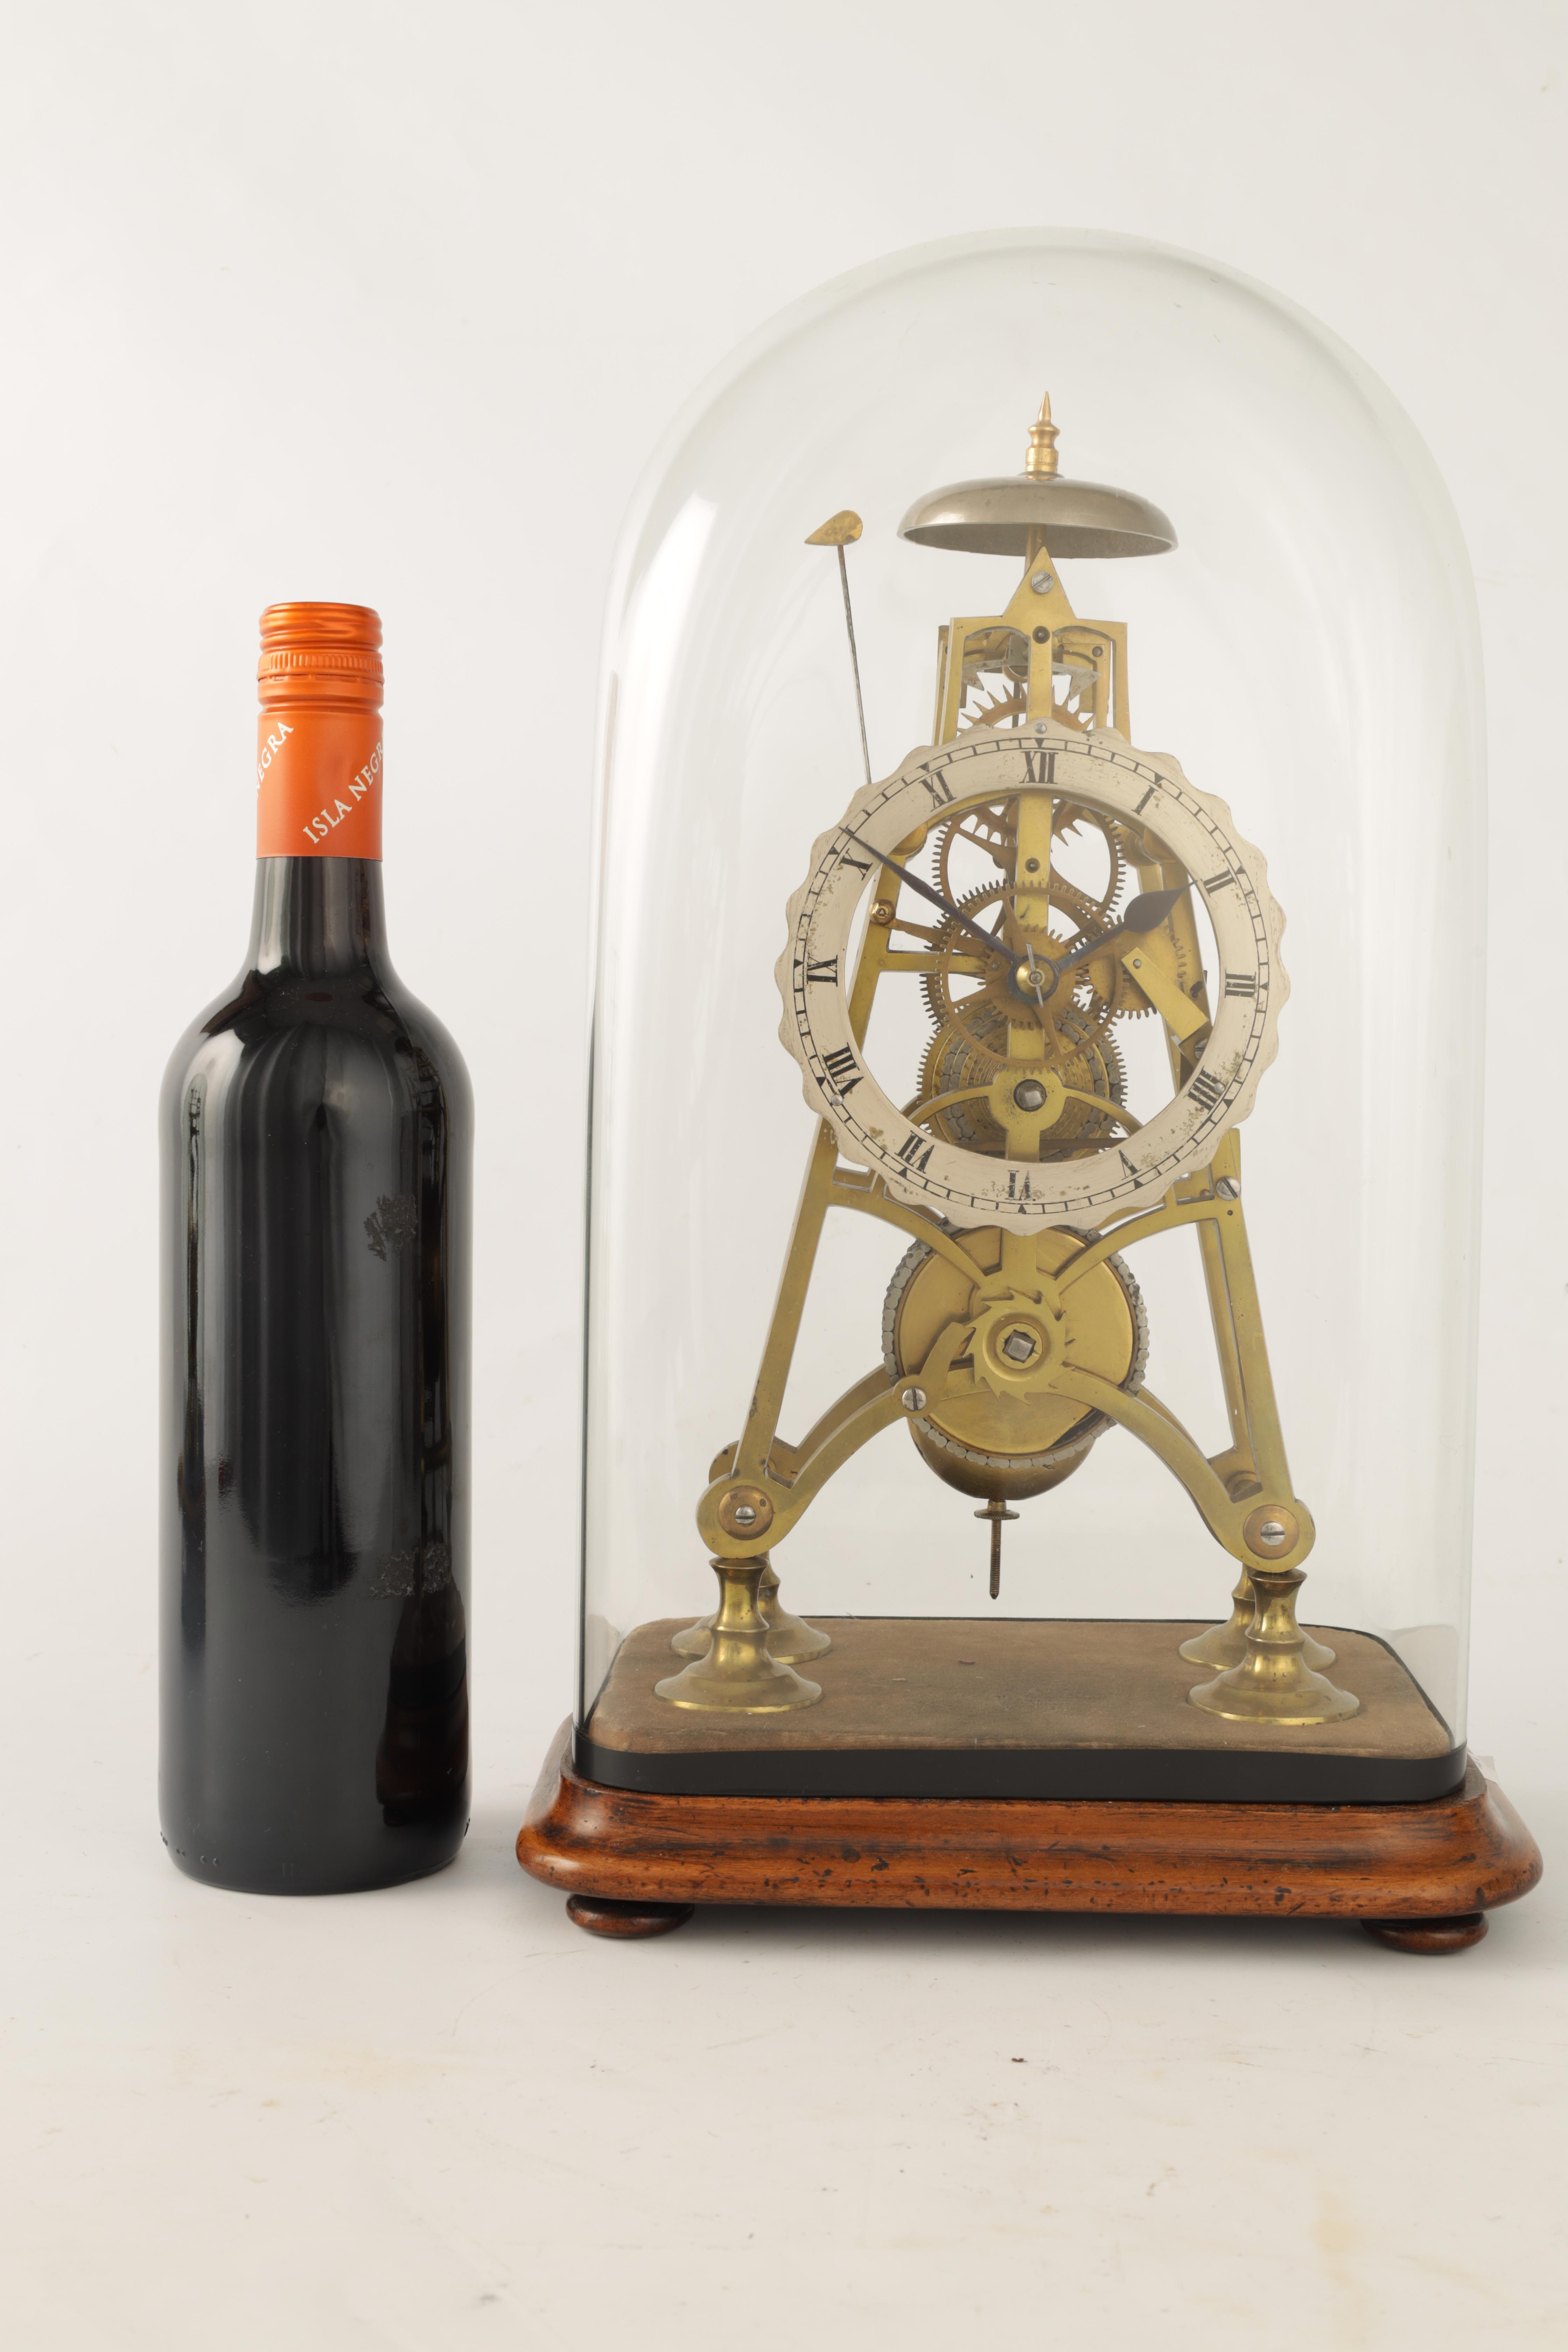 A 19TH CENTURY 8-DAY FUSEE TIMEPIECE SKELETON CLOCK with passing hour bell strike, tapering plates - Image 3 of 6